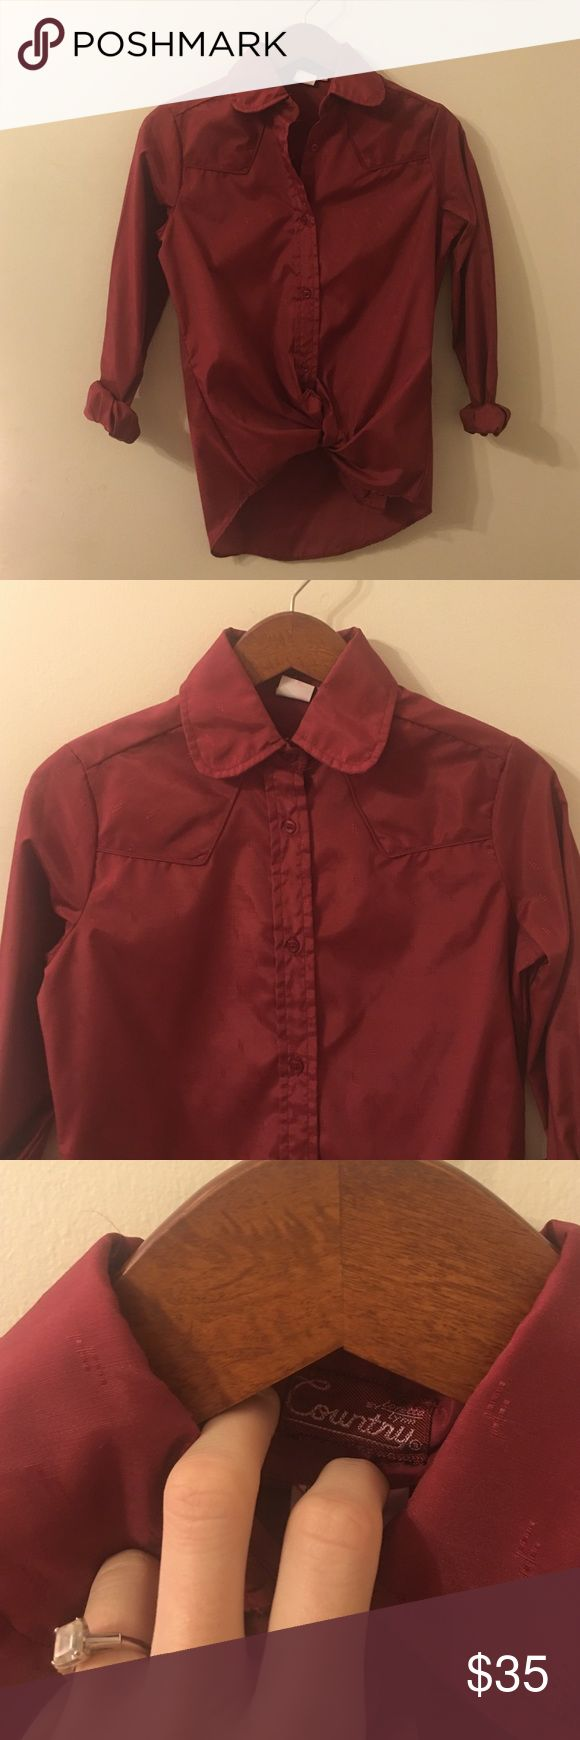 Small Western Blouse, Country by Loretta Lynn Size Small Burgundy/Red Button Up Western Blouse, Long-Sleeve 🌵🌸🌵 Brand is Country by Loretta Lynn. Super rare, authentic. Free People Tops Blouses